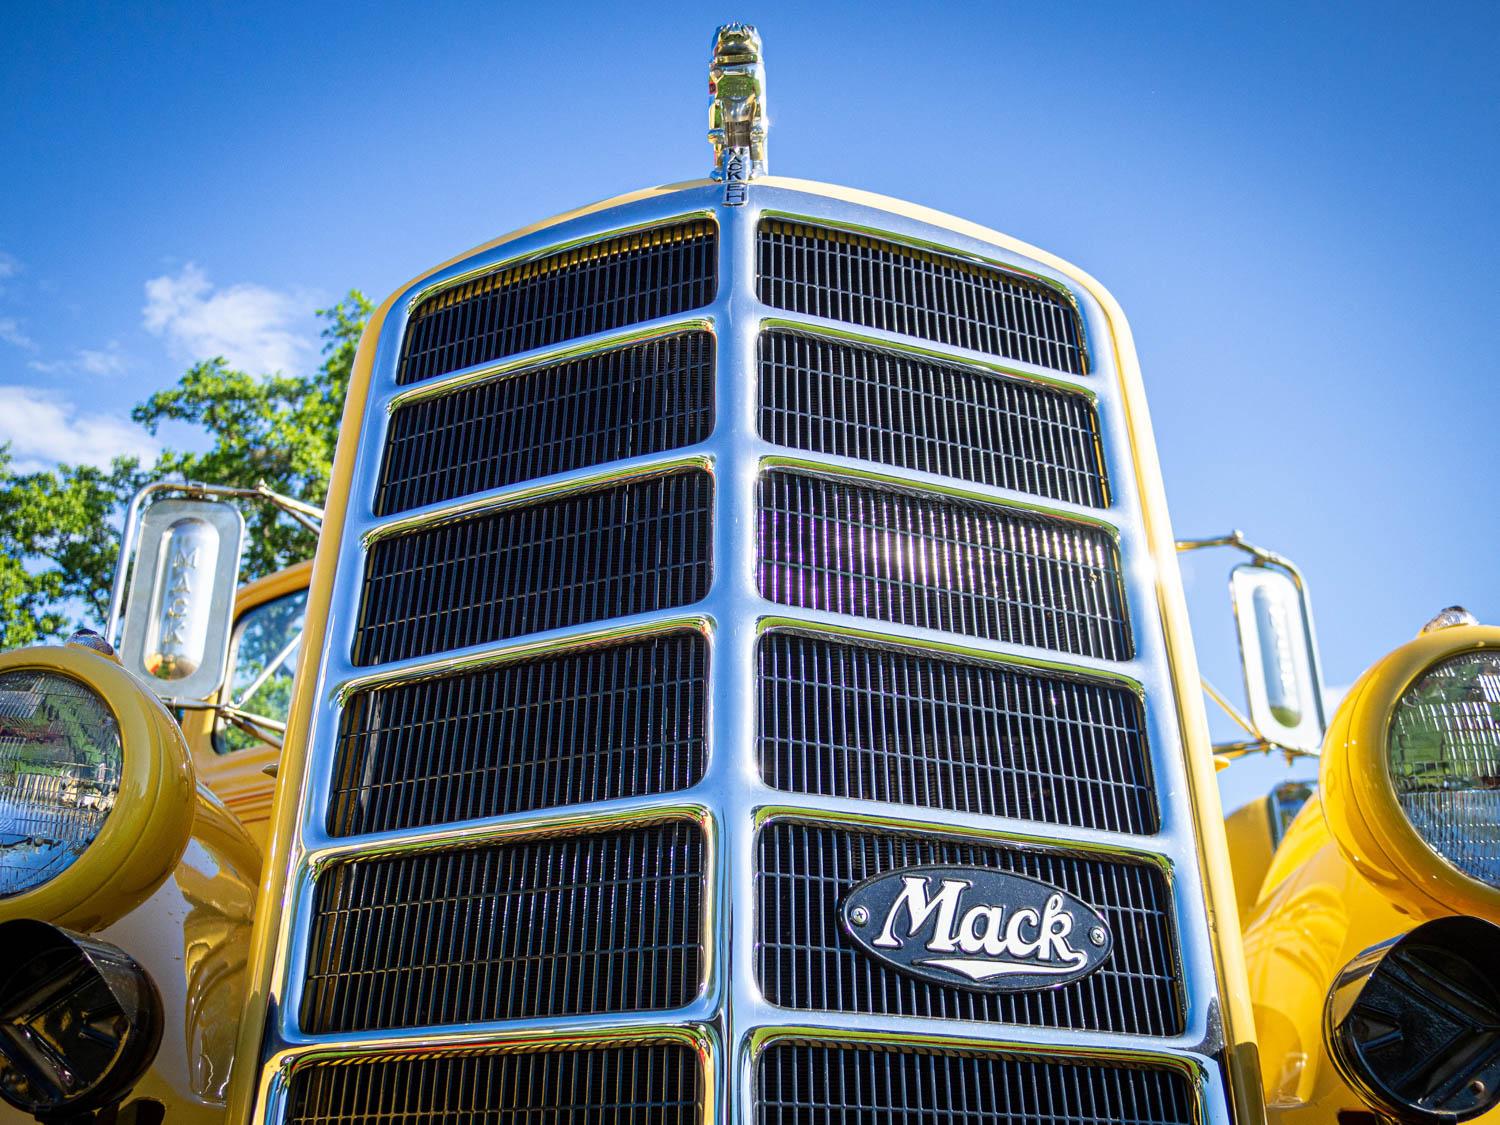 Skip McKean of Henniker, New Hampshire, brought his fleet of vintage Macks, each wearing the pale yellow livery of his petroleum delivery business. They included a 1942 ED, 1946 EH, 1950 A40, 1951 LF, and 1956 Model B85. All made the journey on a flatbed behind his 1985 RW613 Superliner.